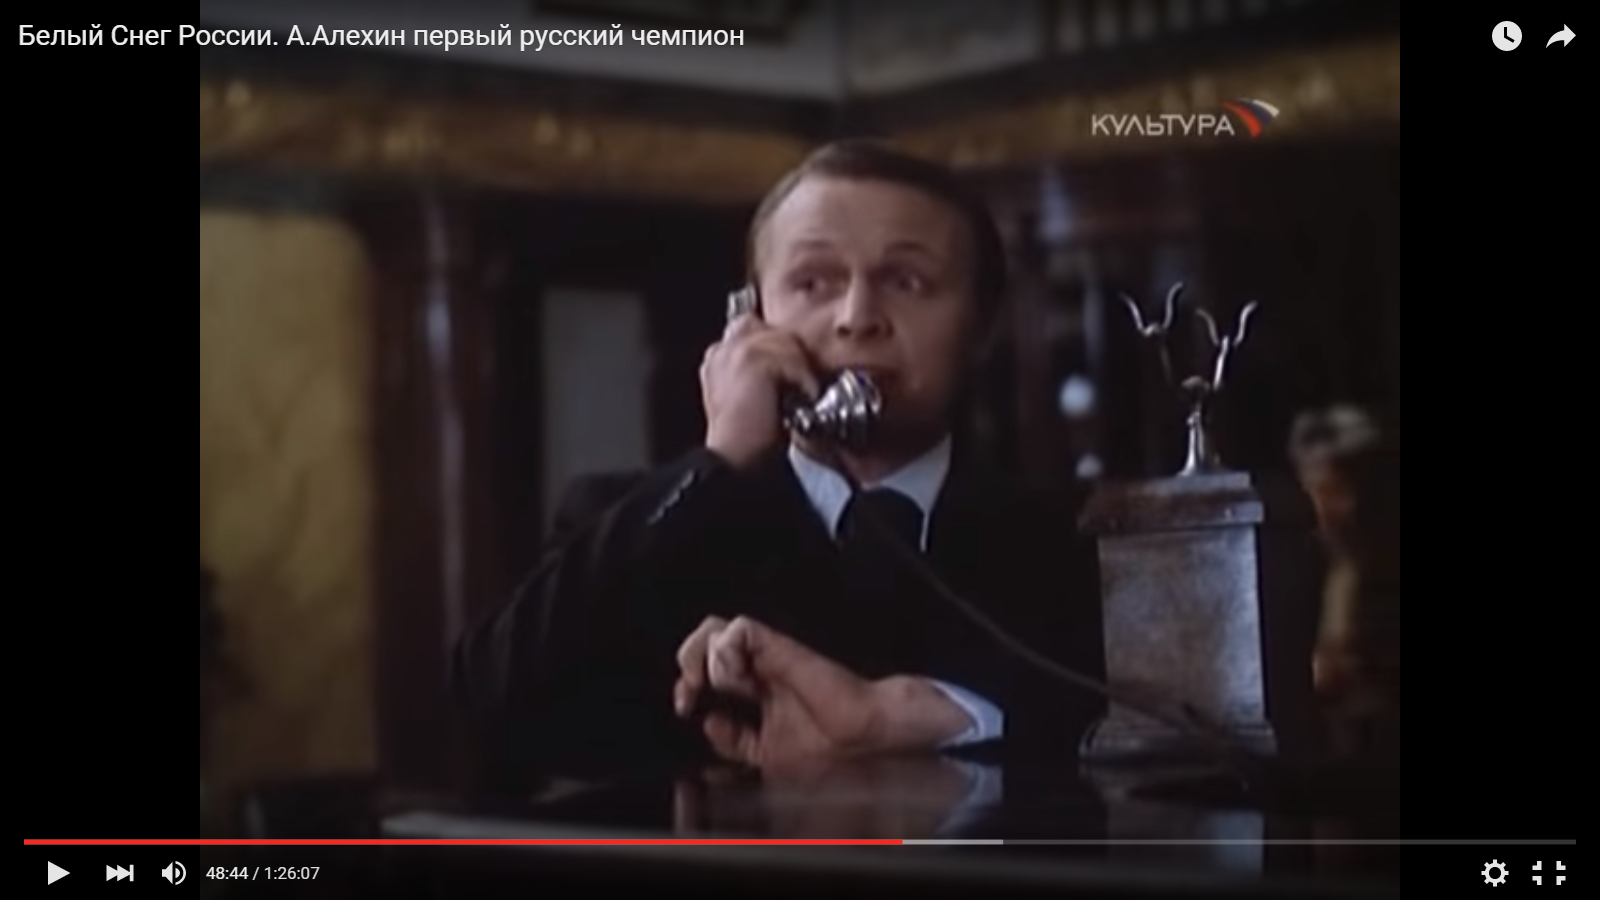 Alexander Mikhailov: biography, films, the personal life of the actor